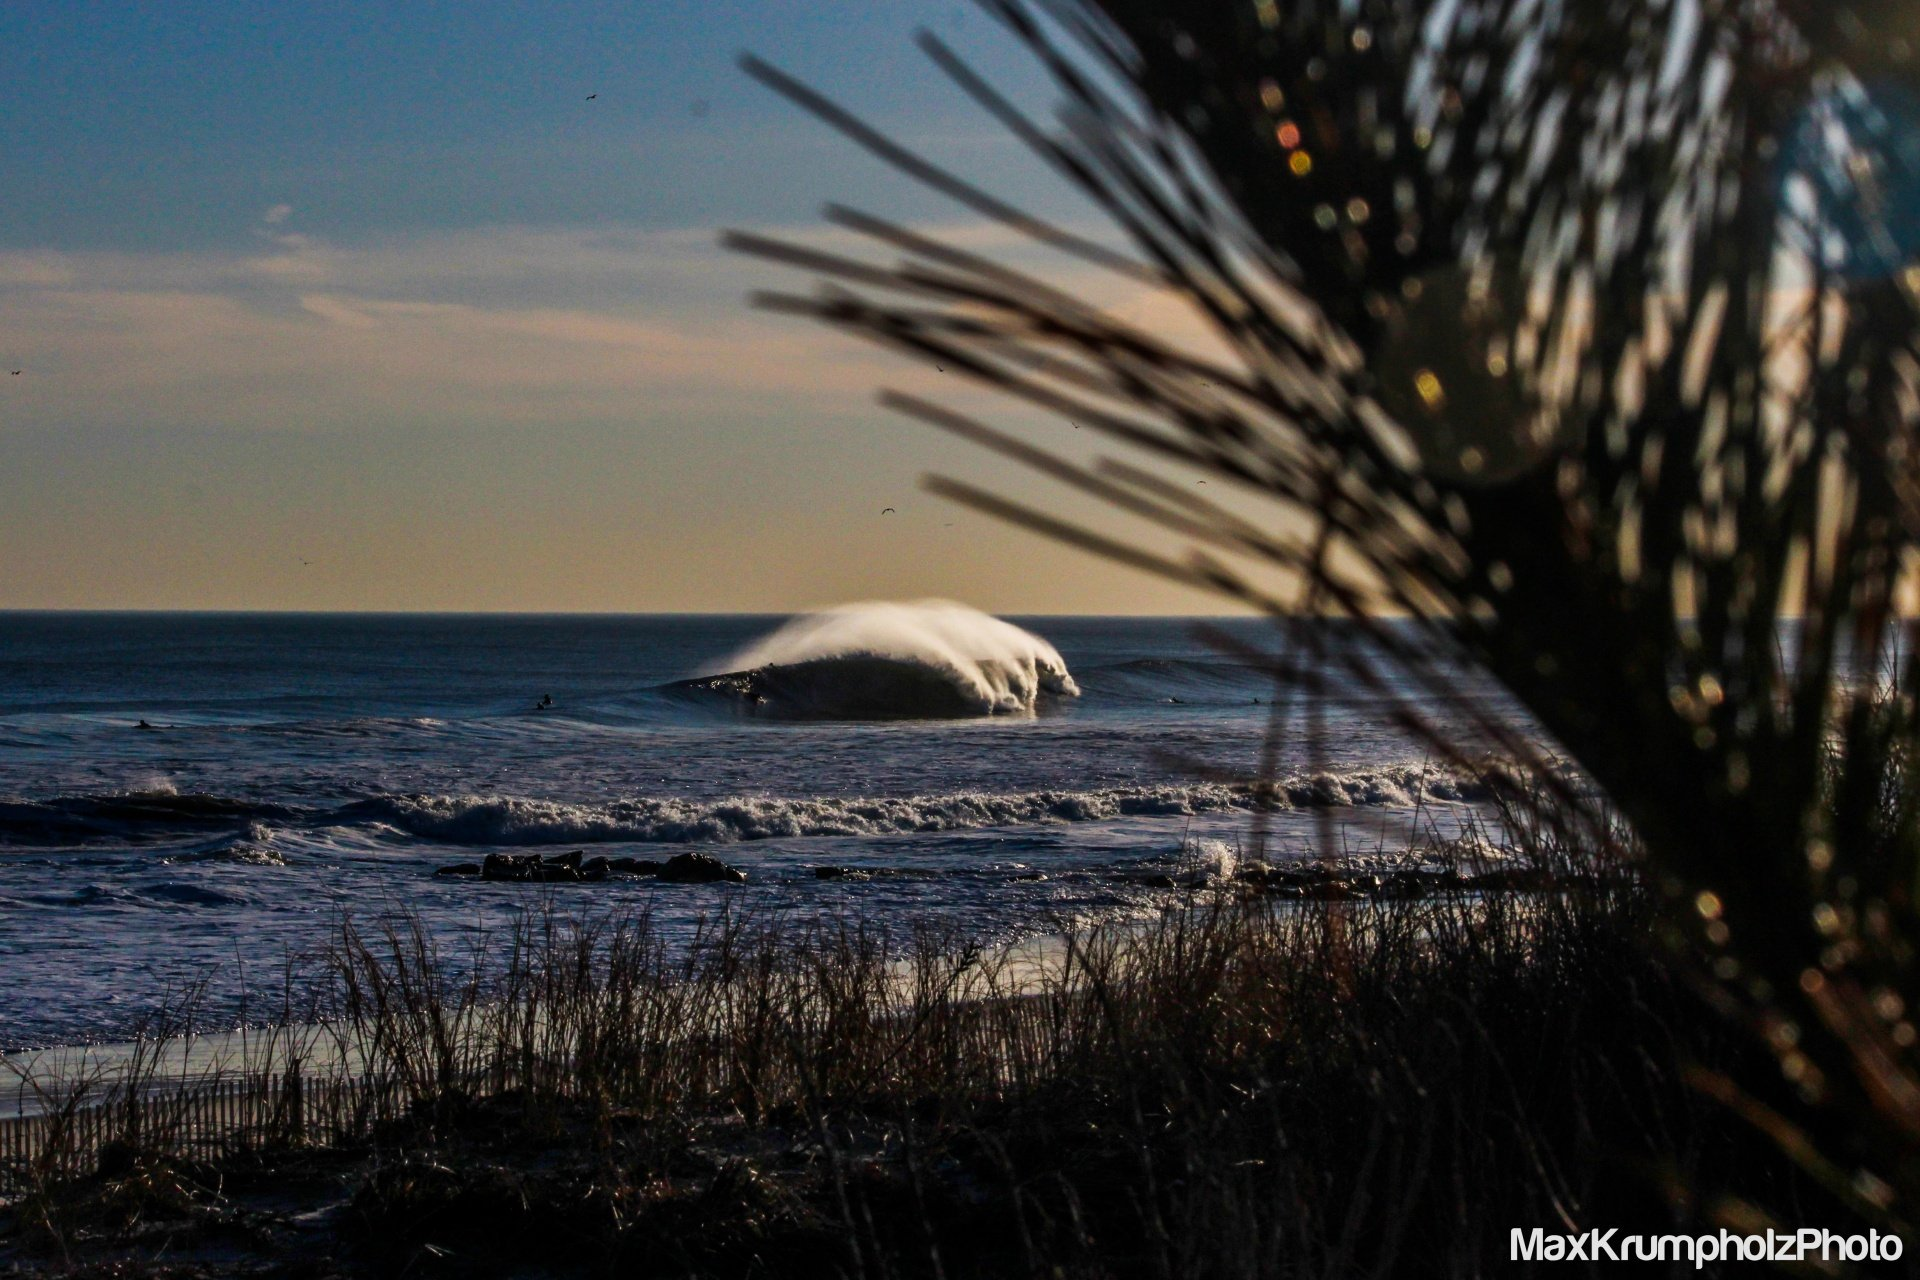 Max Krumpholz's photo of Lido Beach